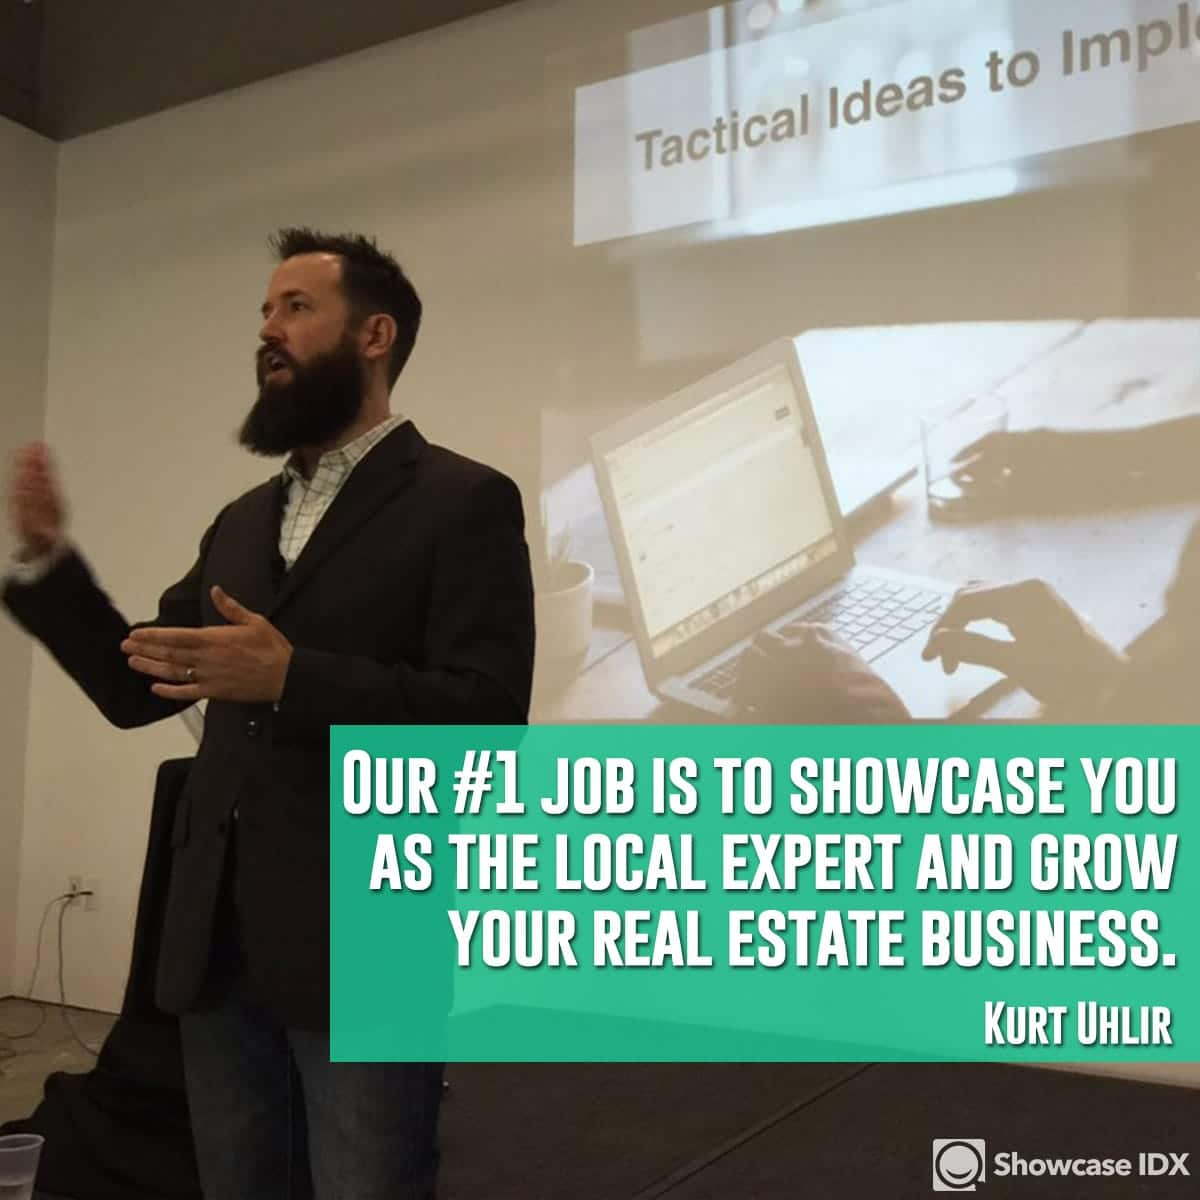 Our #1 job is to showcase you as the local expert and grow your real estate business. - Kurt Uhlir